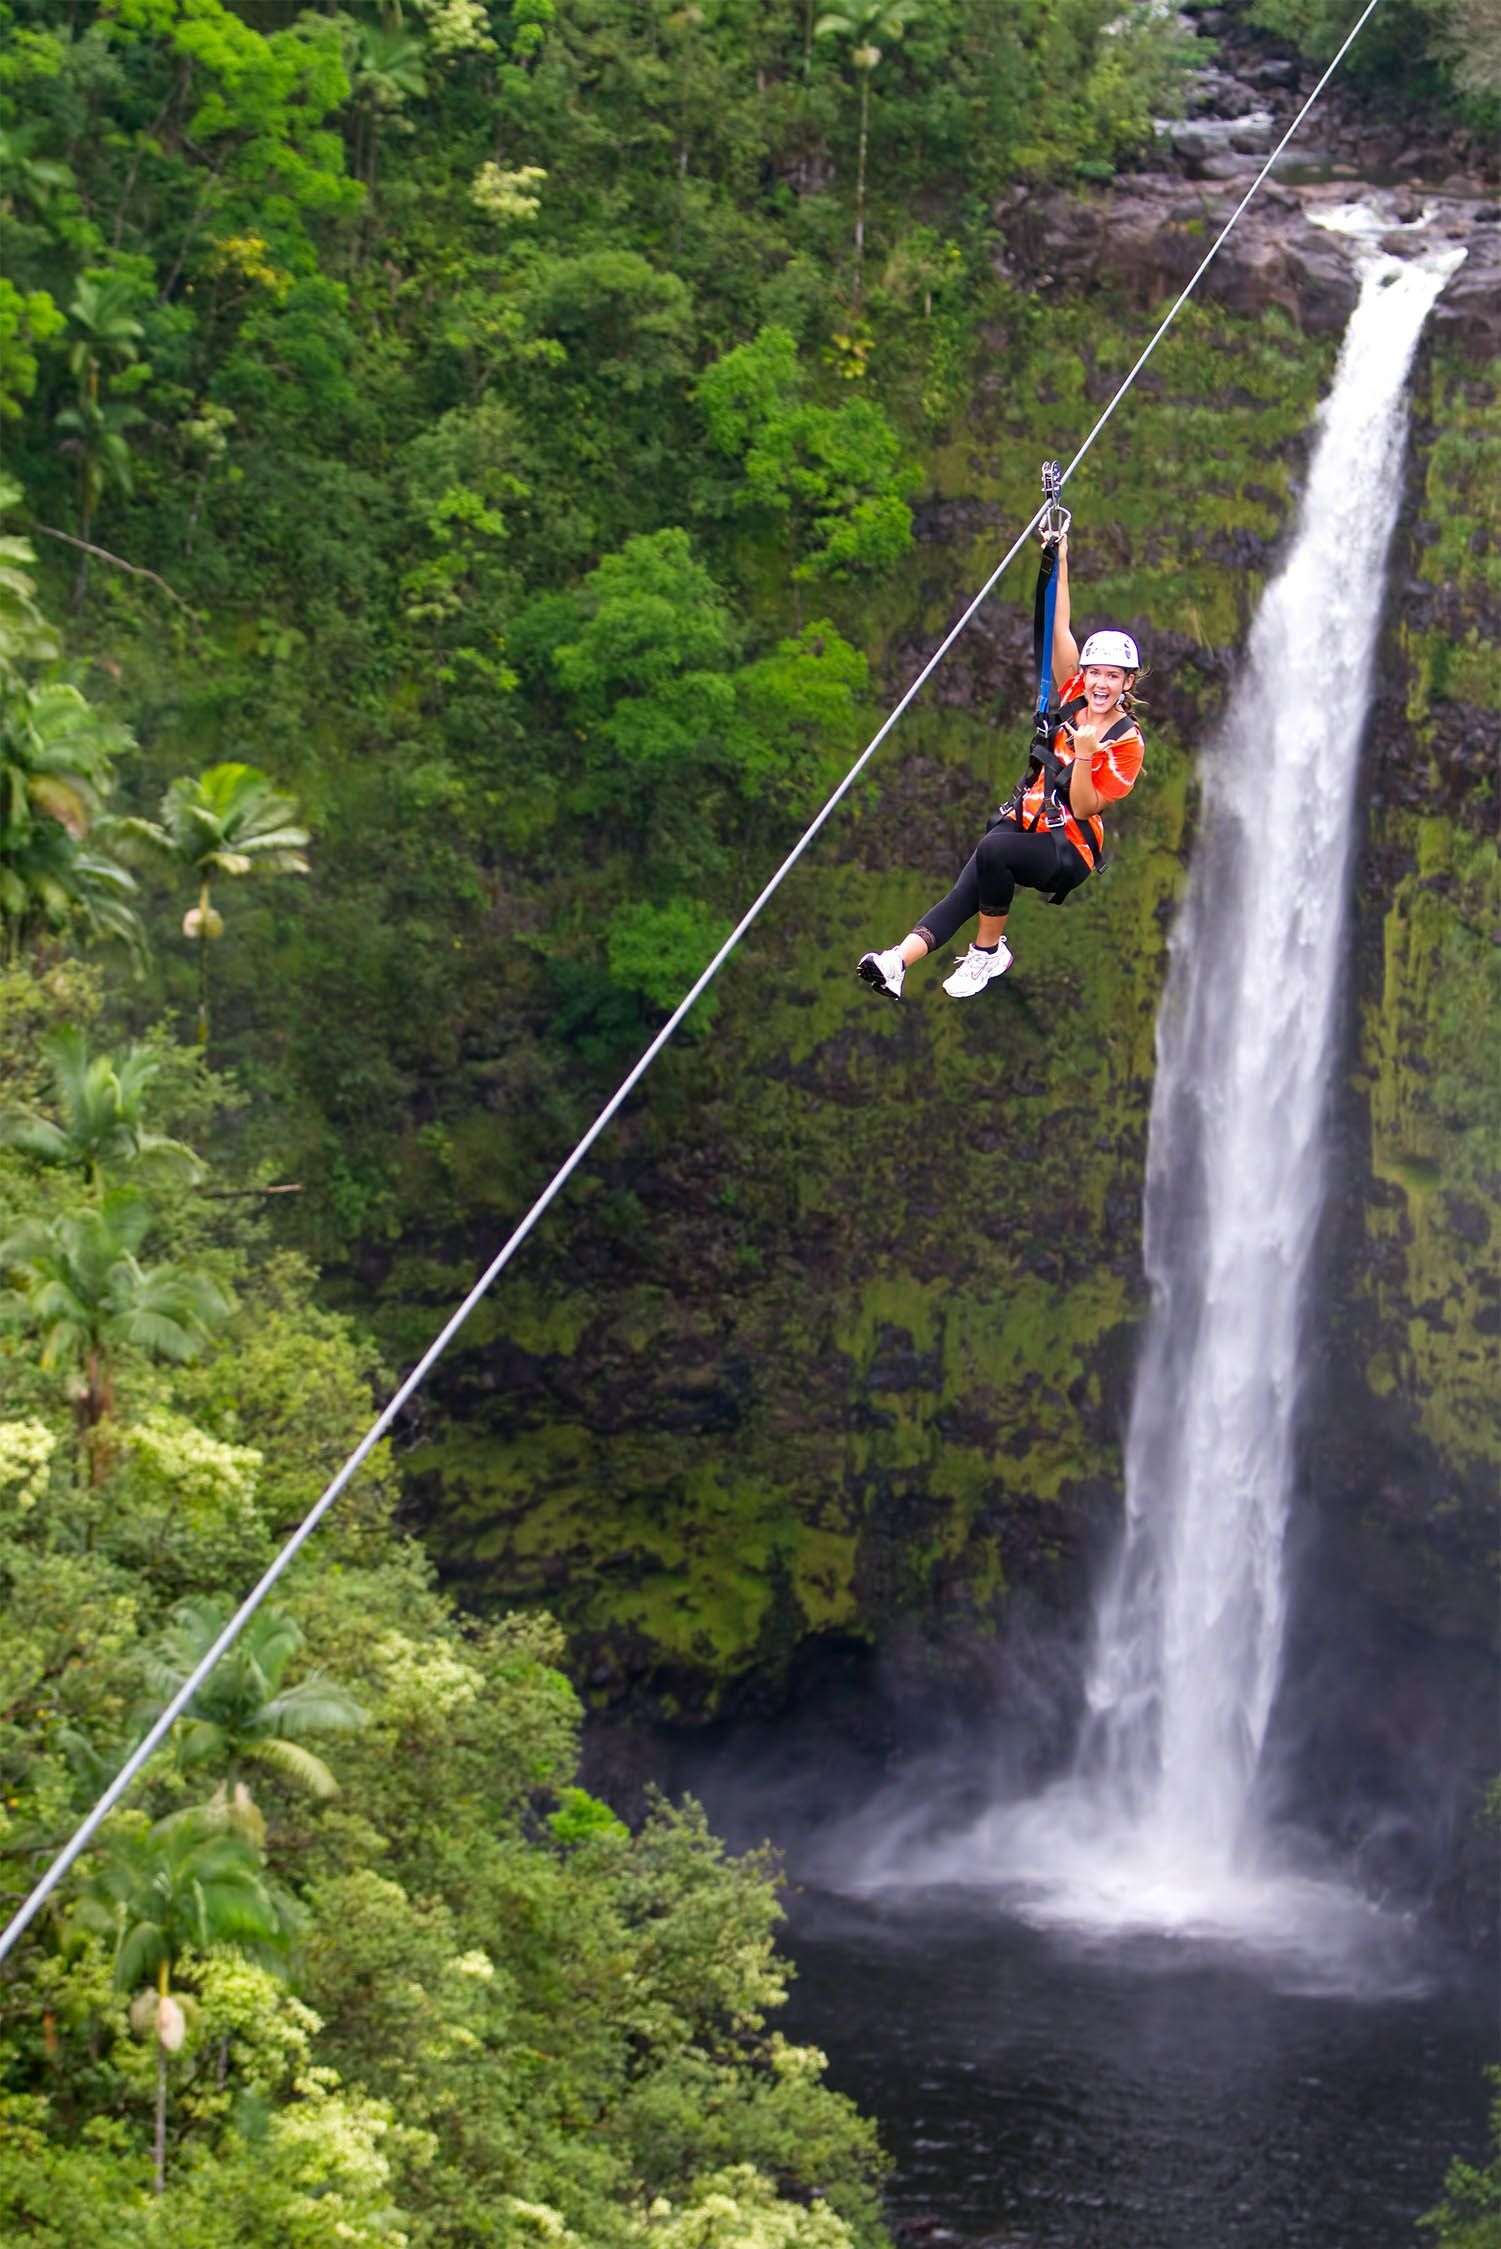 Big Island Zipline Tour in Akaka Falls, Hawaii - Zipline